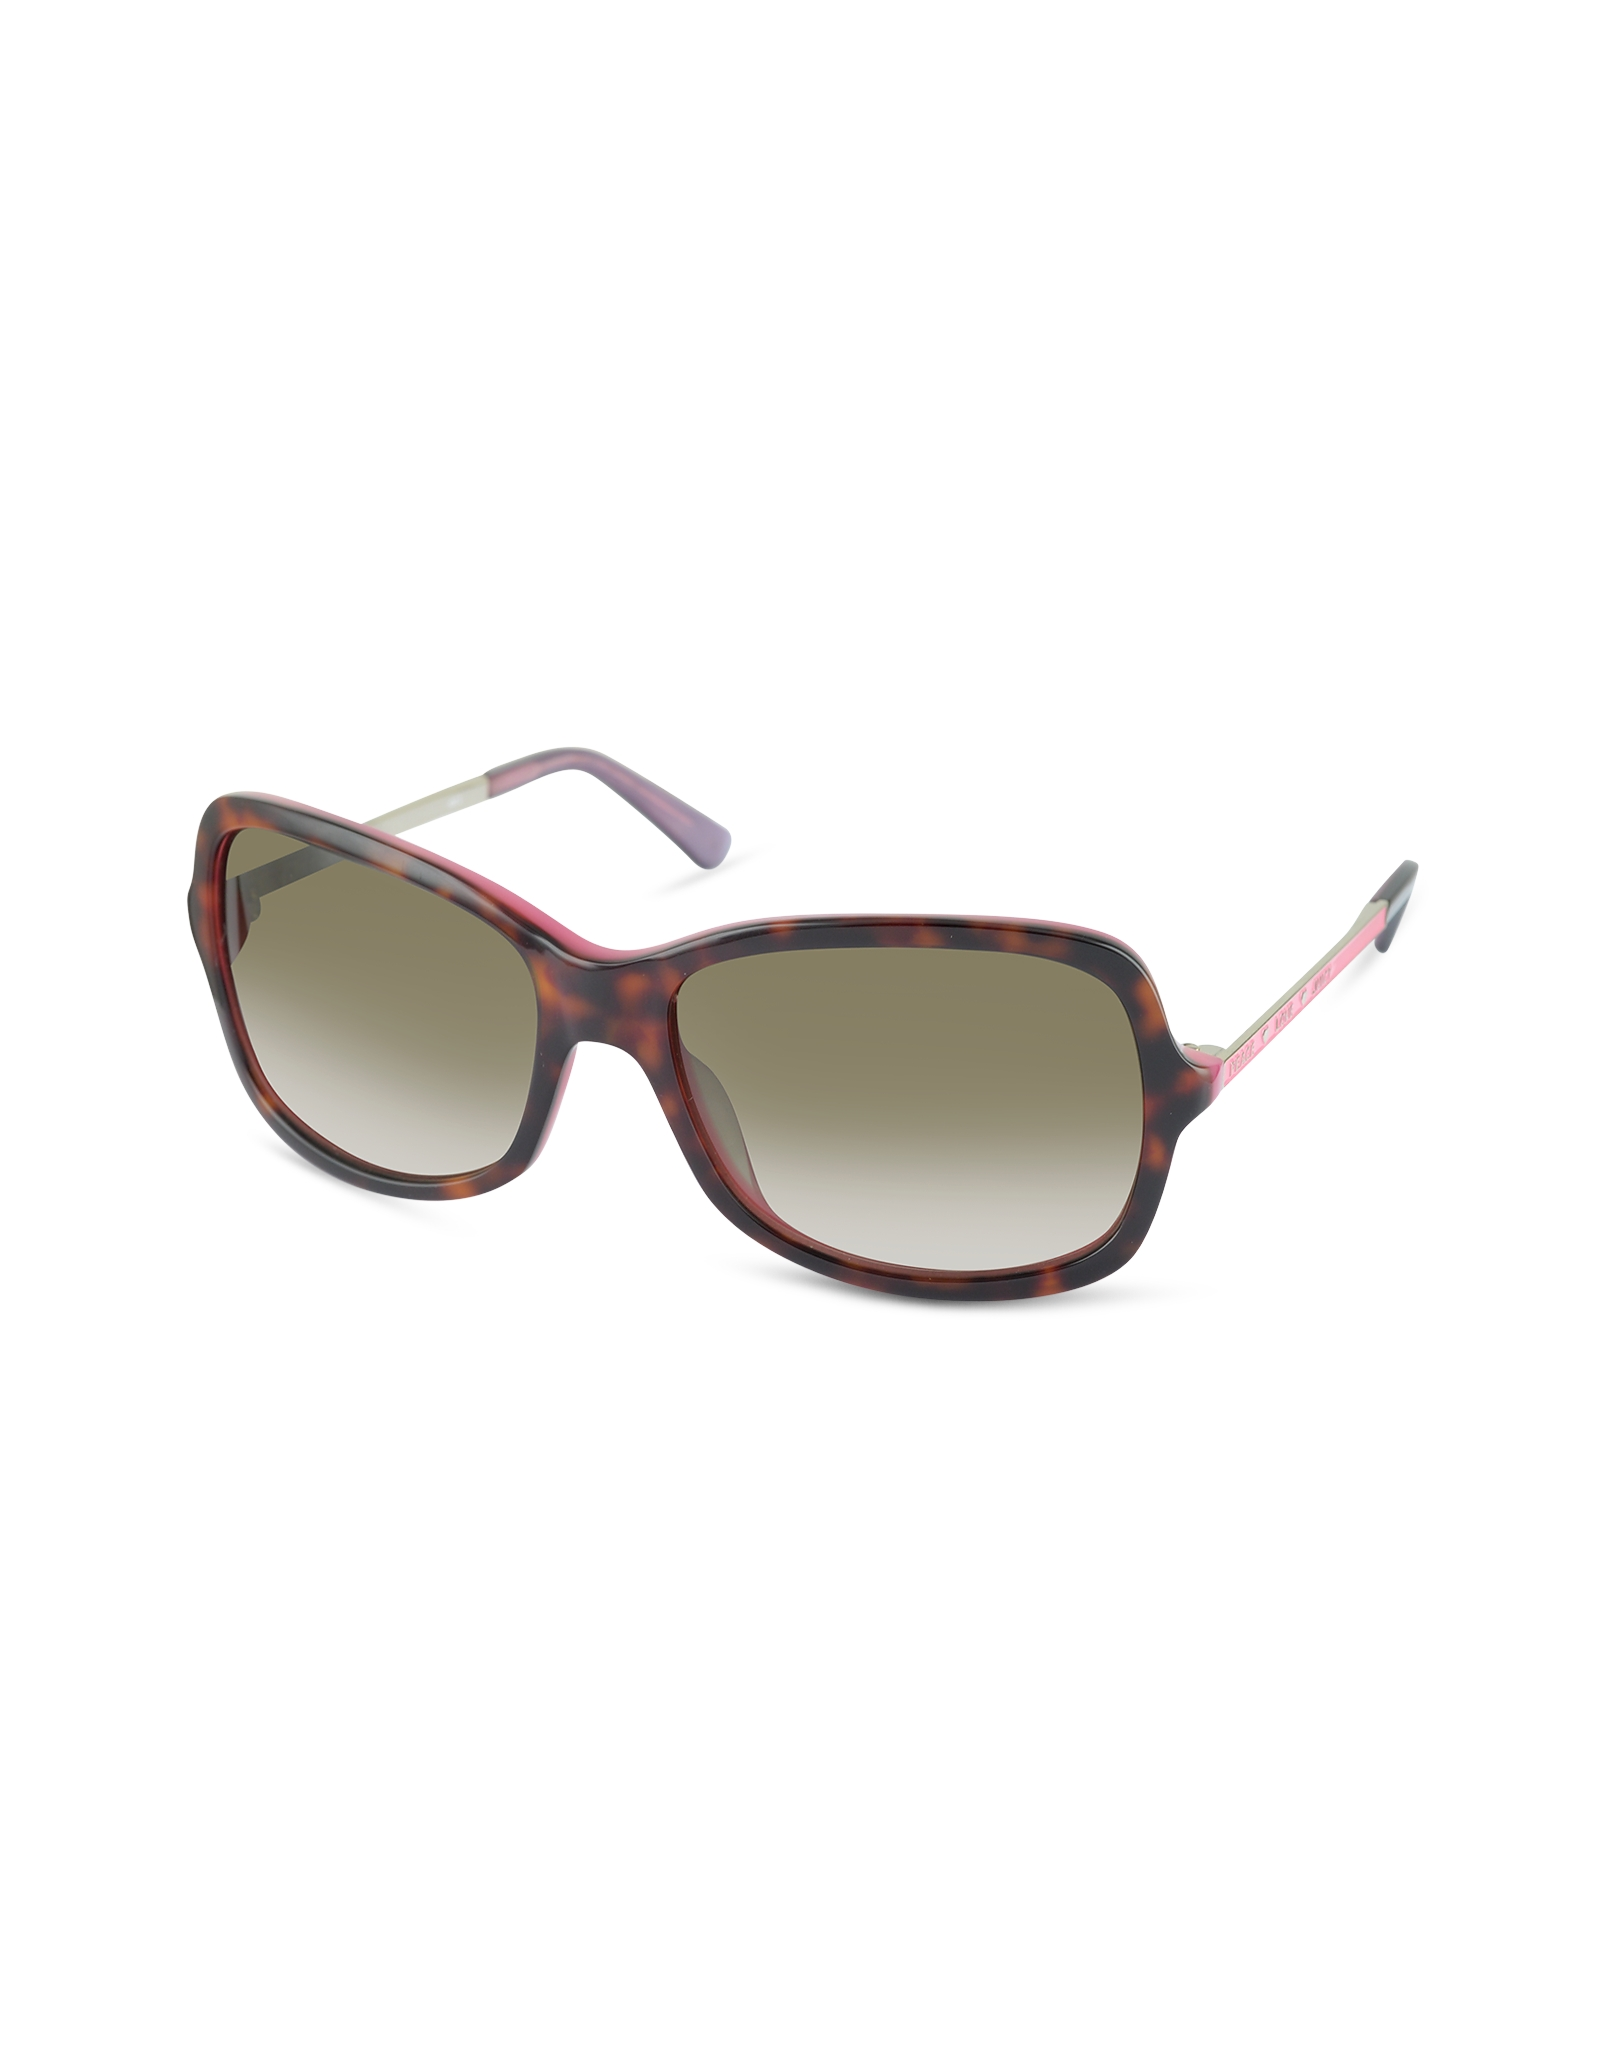 bb53c9b93339 Juicy Couture The American - Tortoiseshell Sunglasses in Brown - Lyst